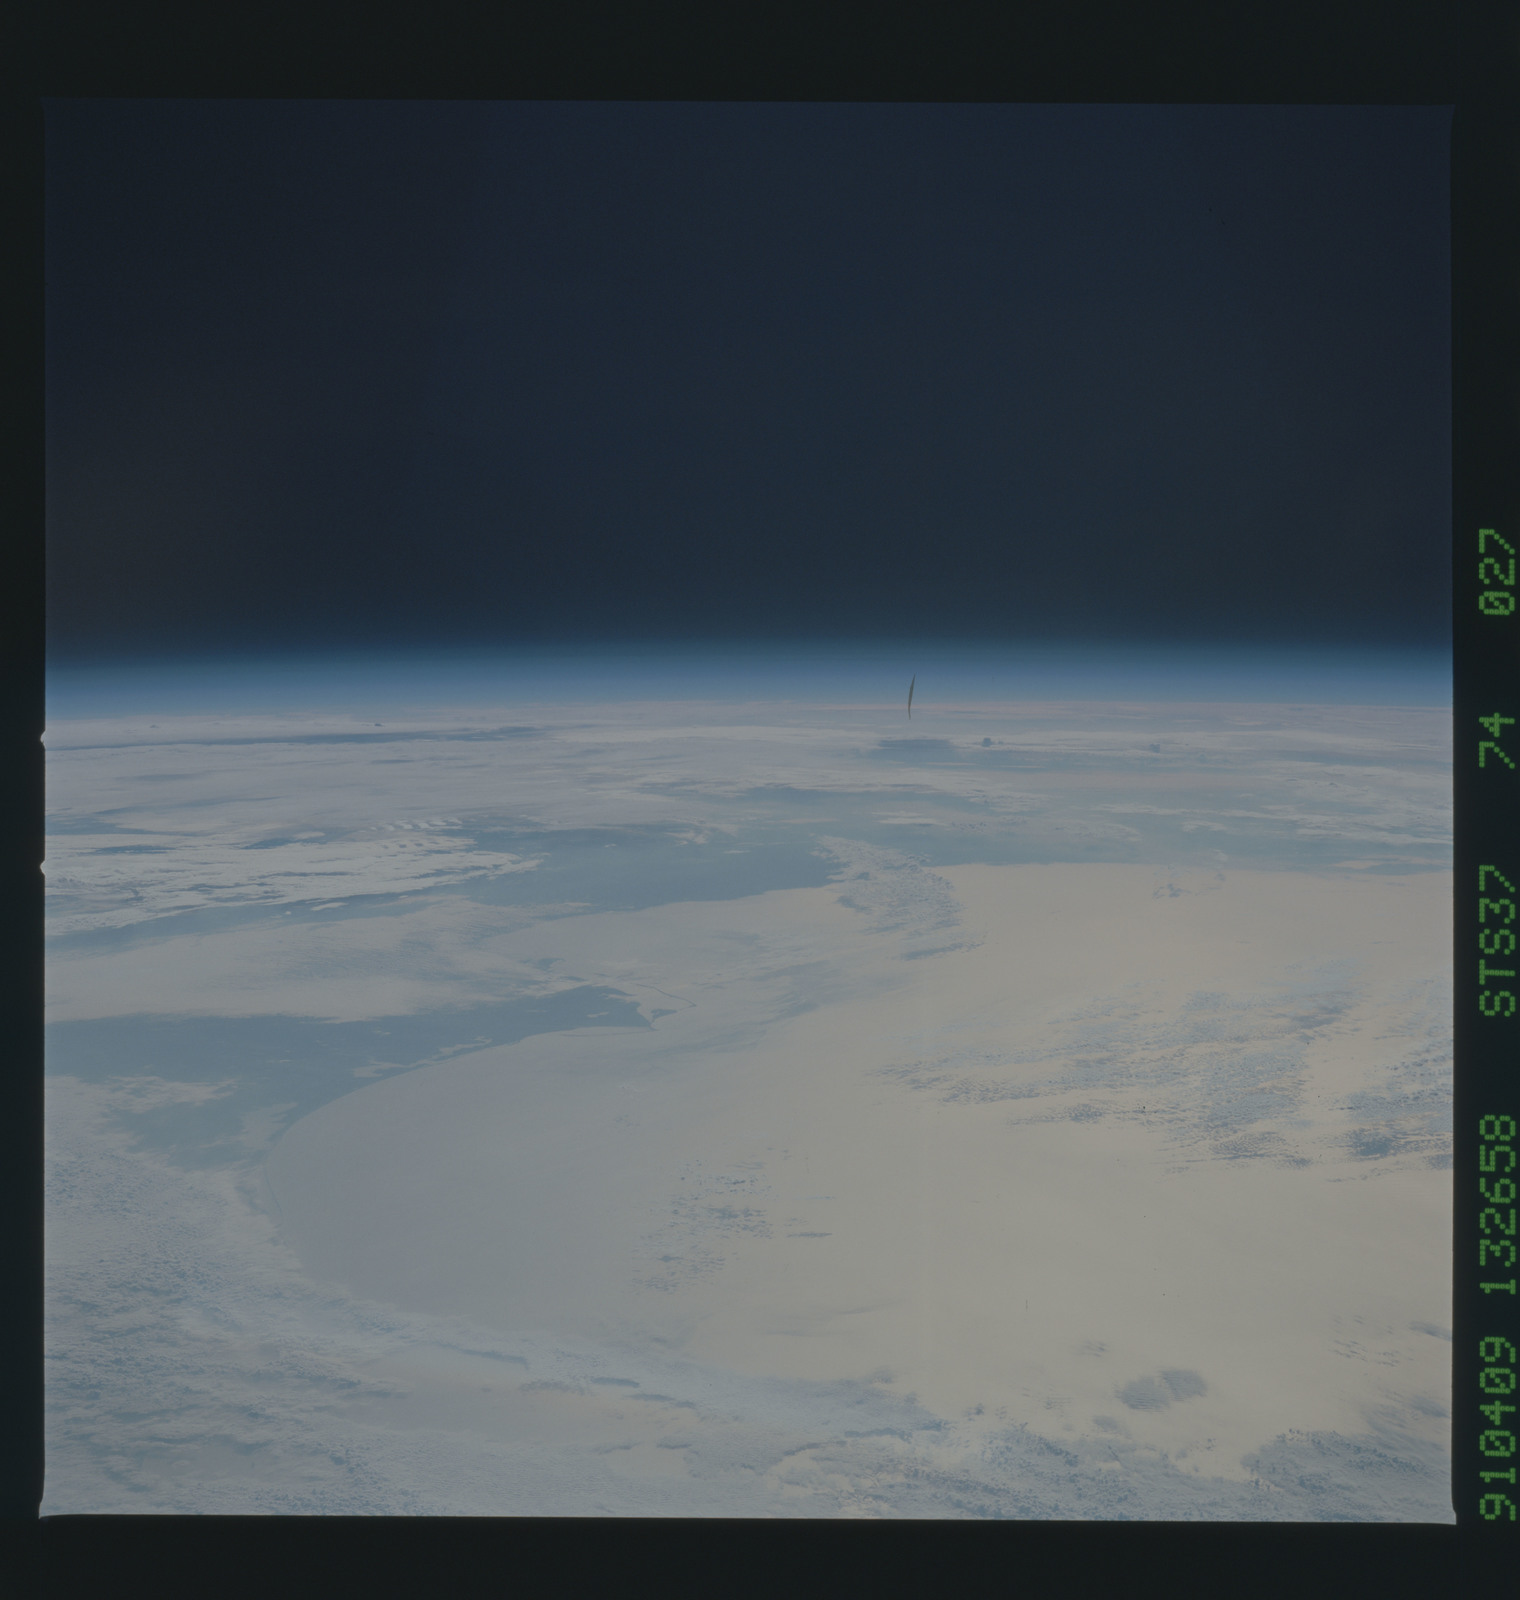 S37-74-027 - STS-037 - Earth observations taken during the STS-37 mission